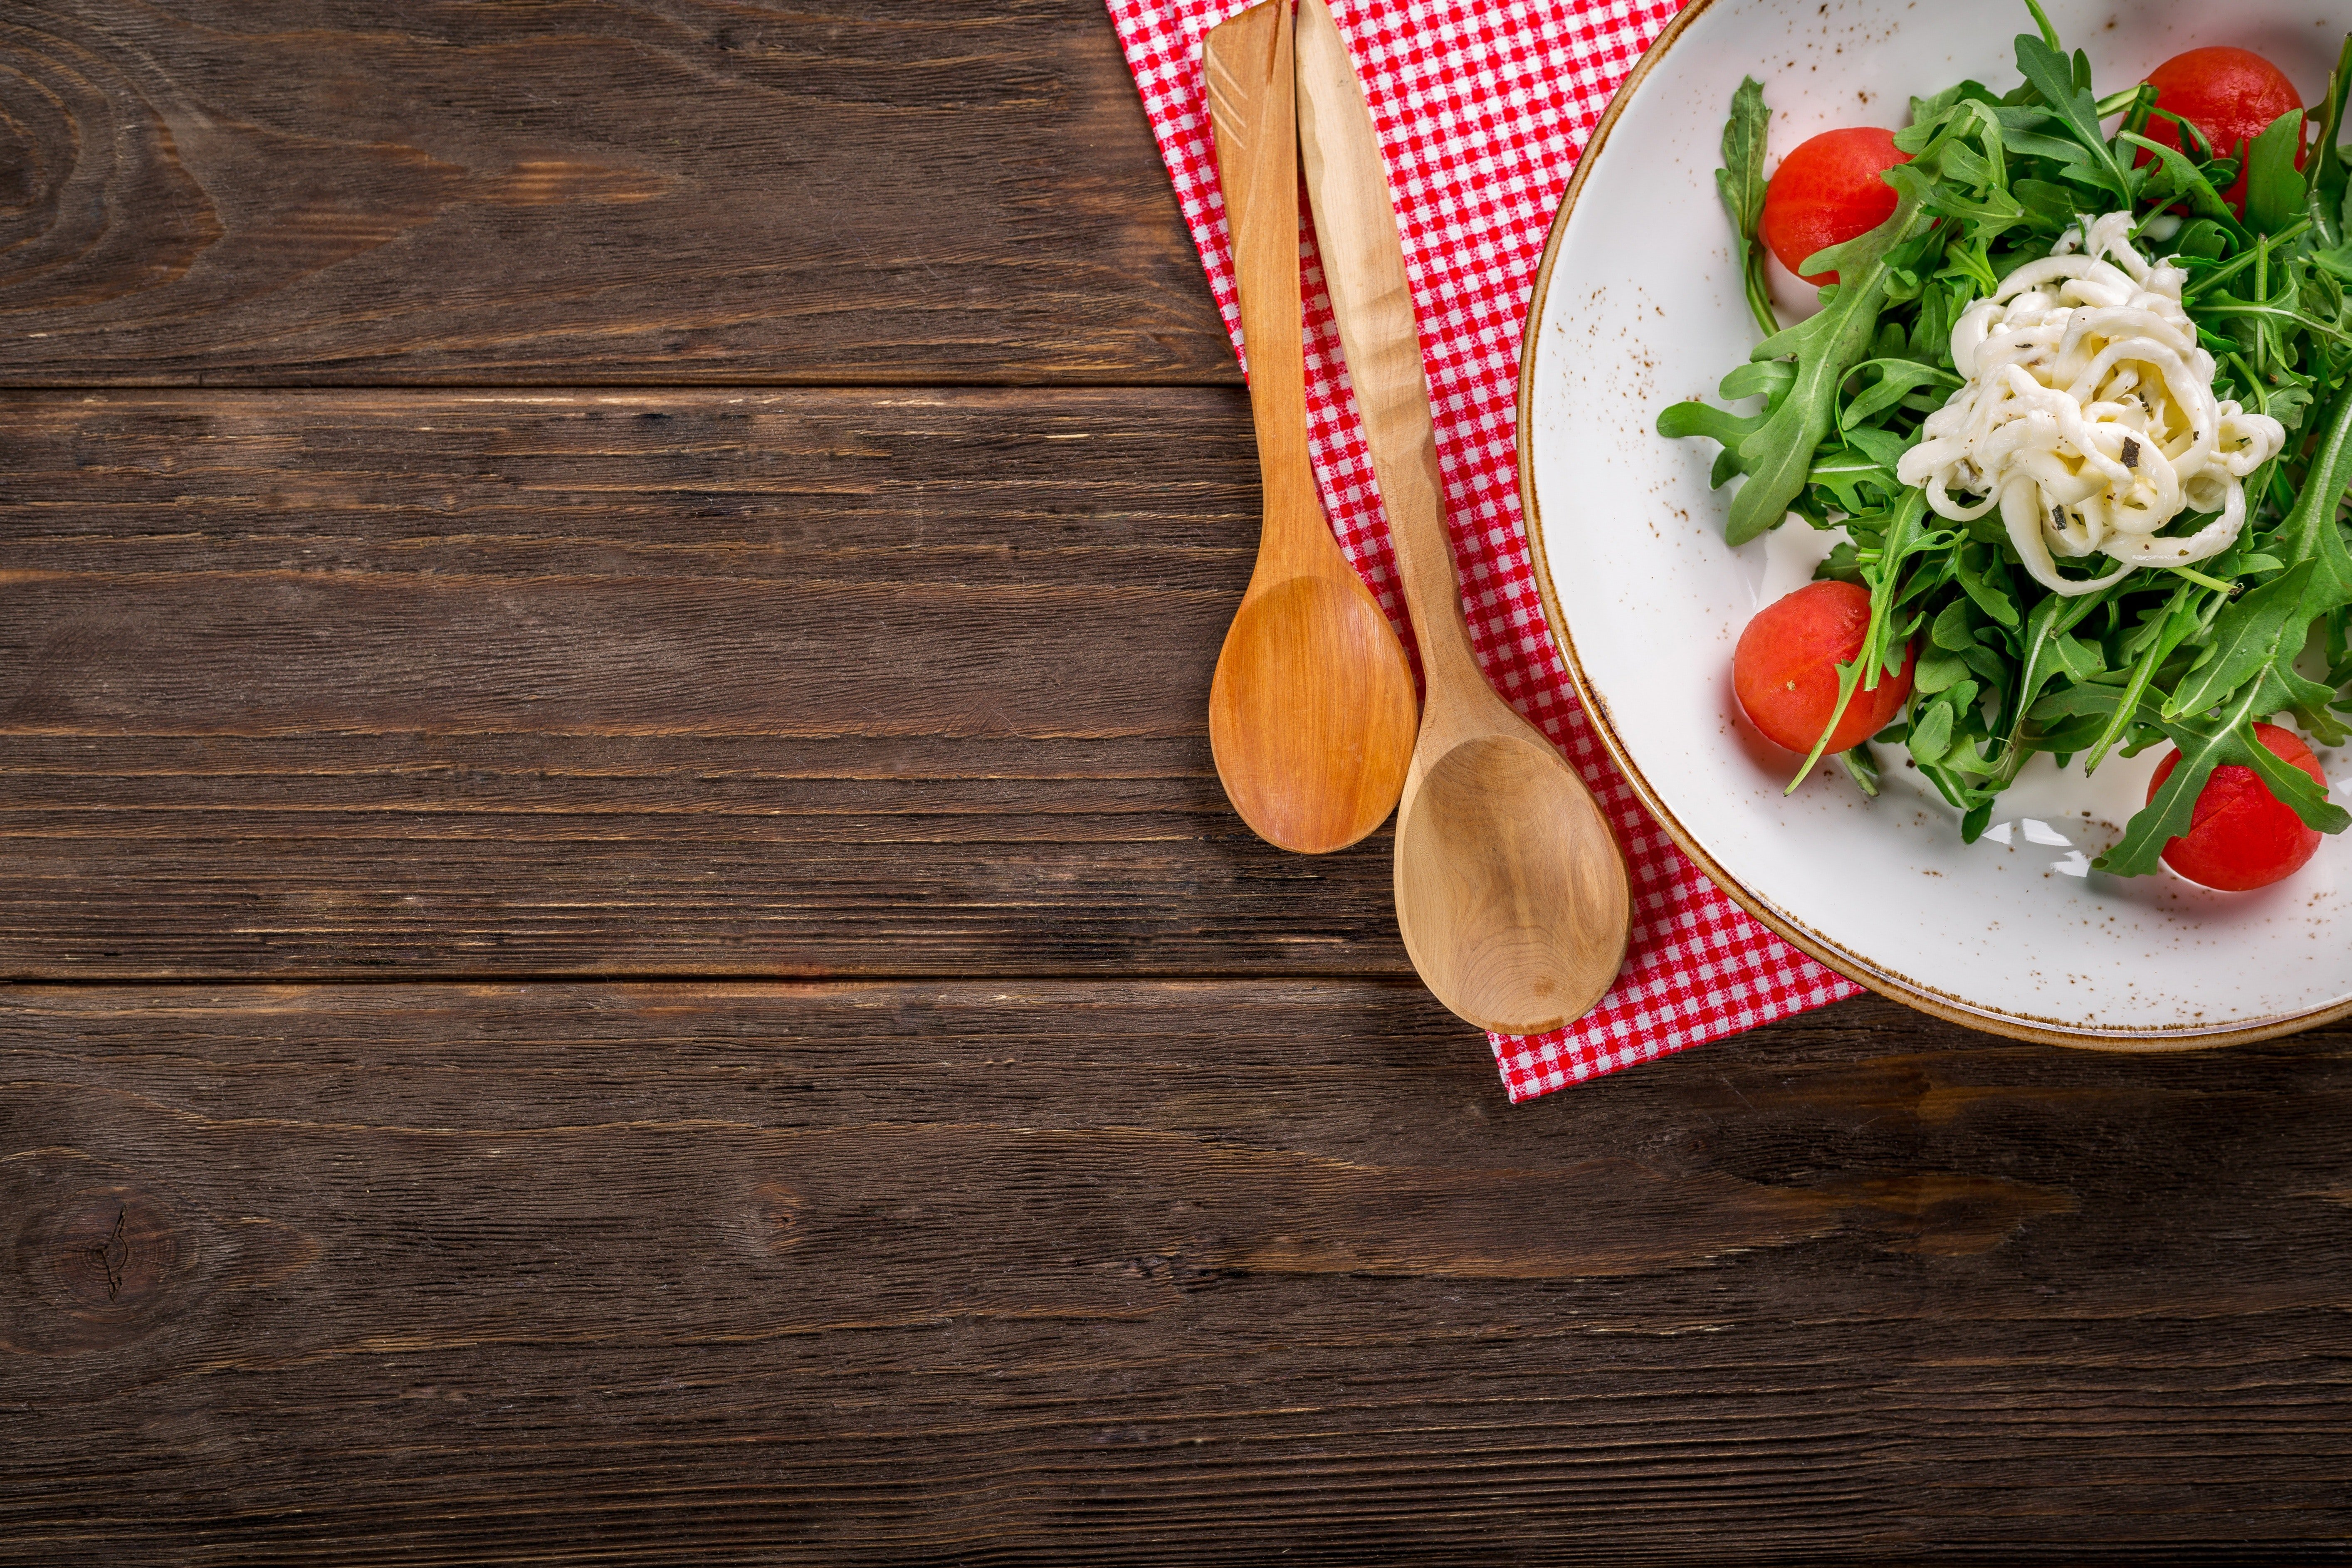 Food Table Wallpapers   Top Free Food Table Backgrounds ...